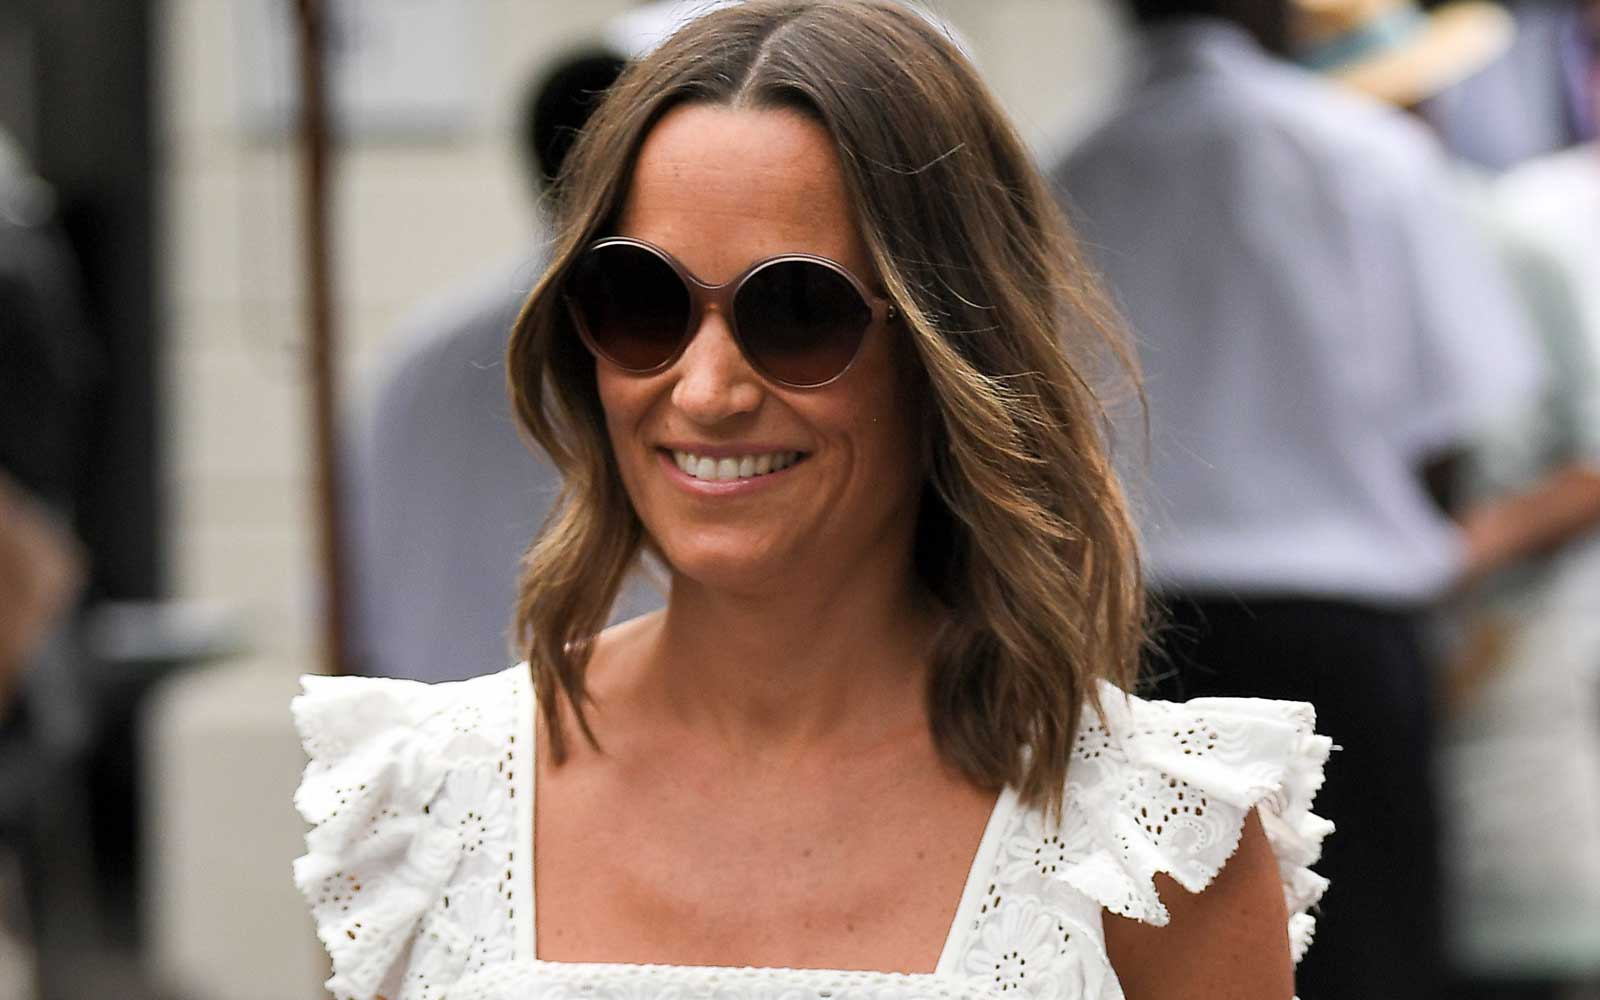 Pippa Middleton's Flattering One-piece Swimsuit Is on Sale Right Now